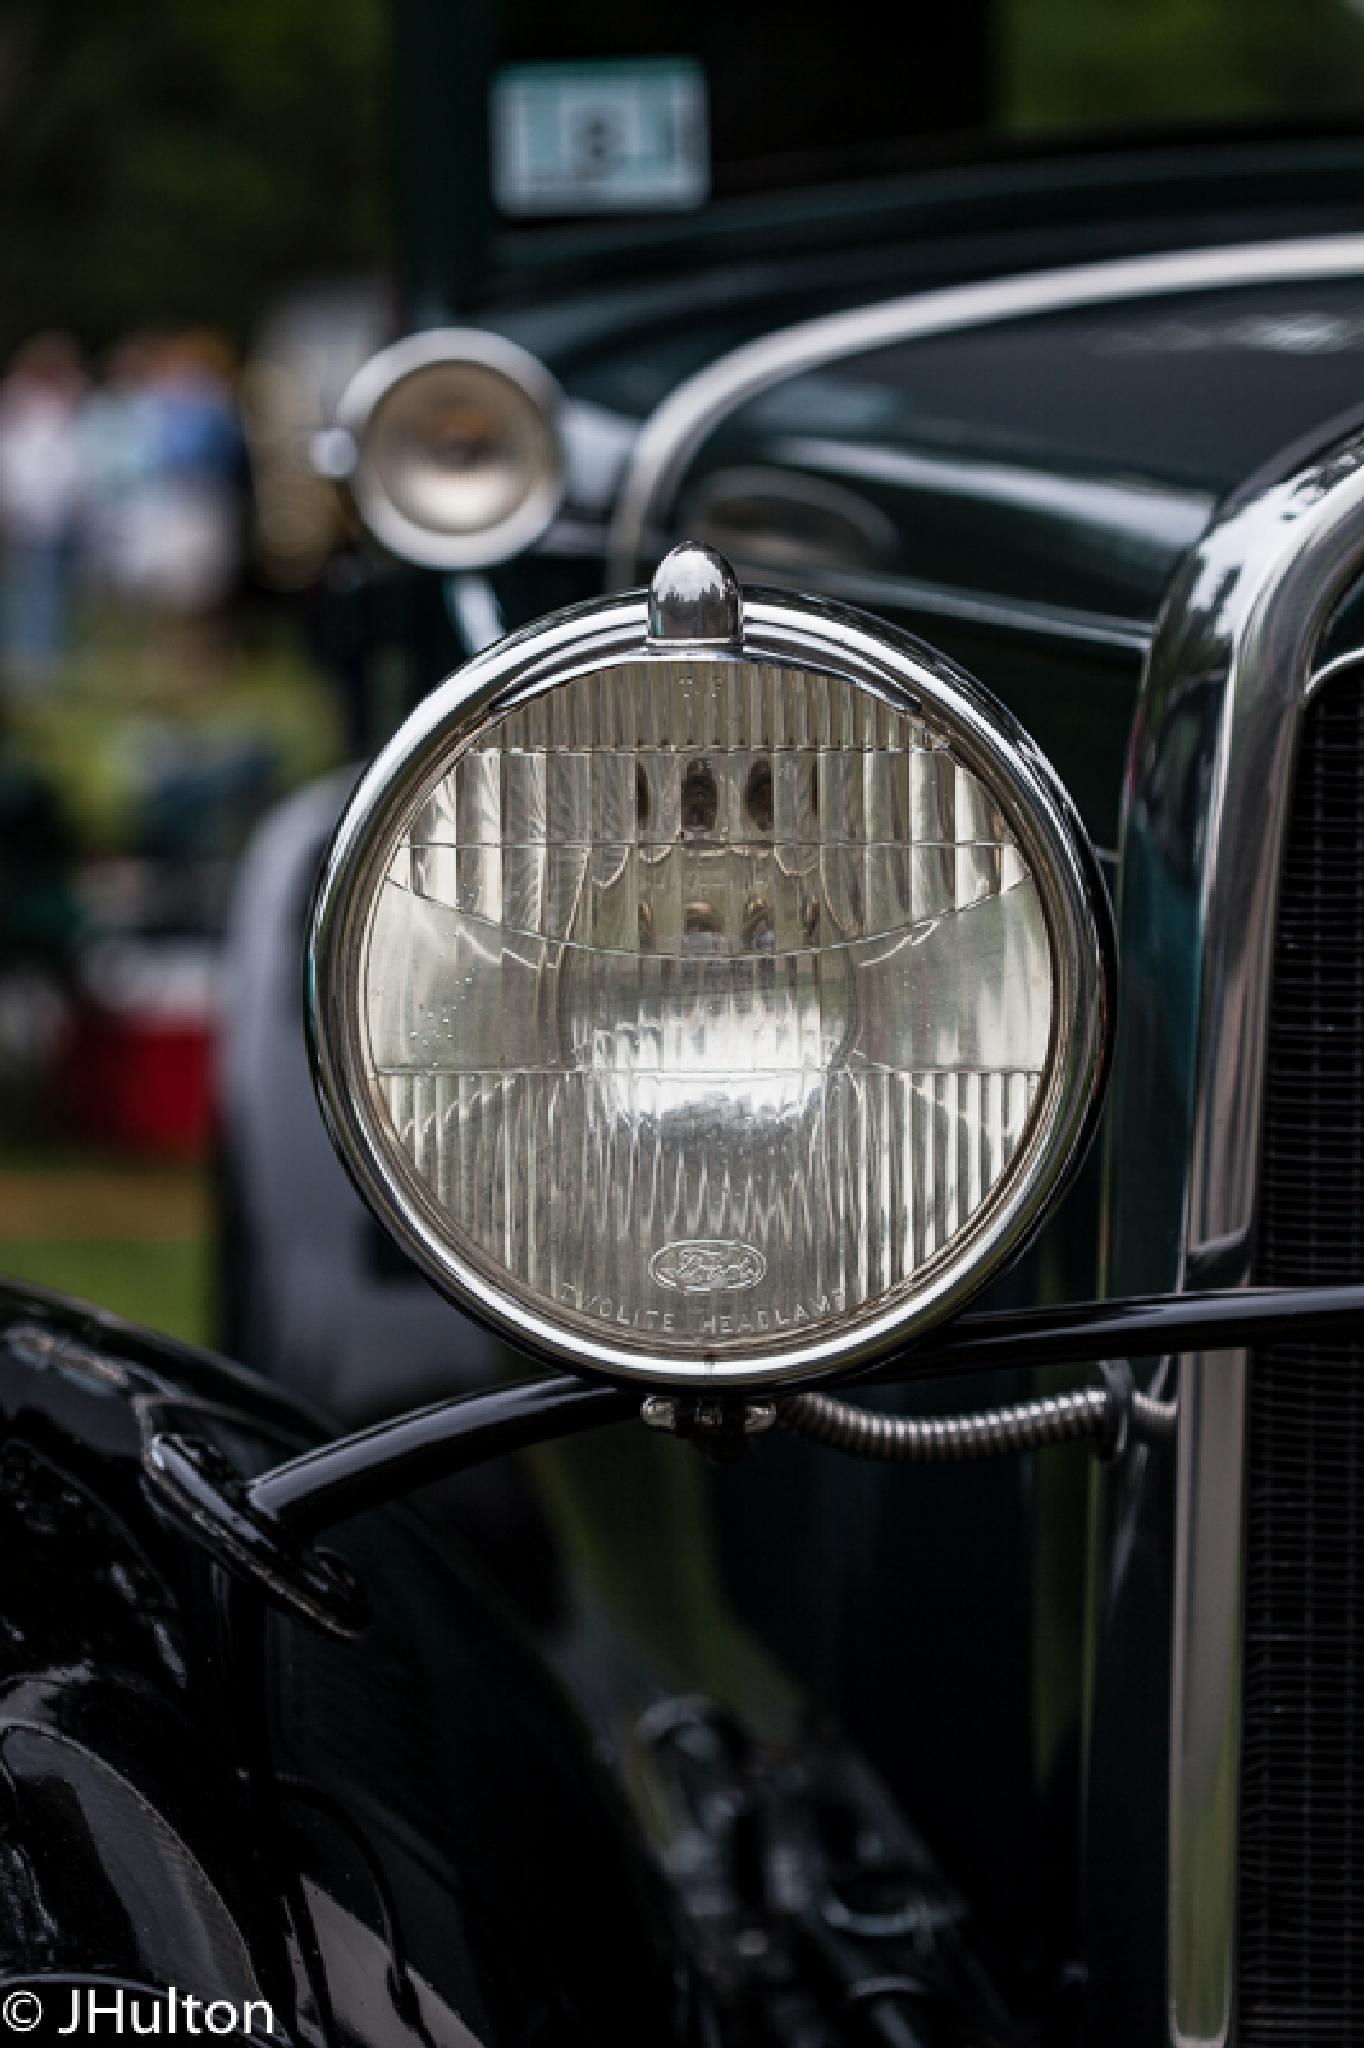 Vintage Auto Show by jhulton